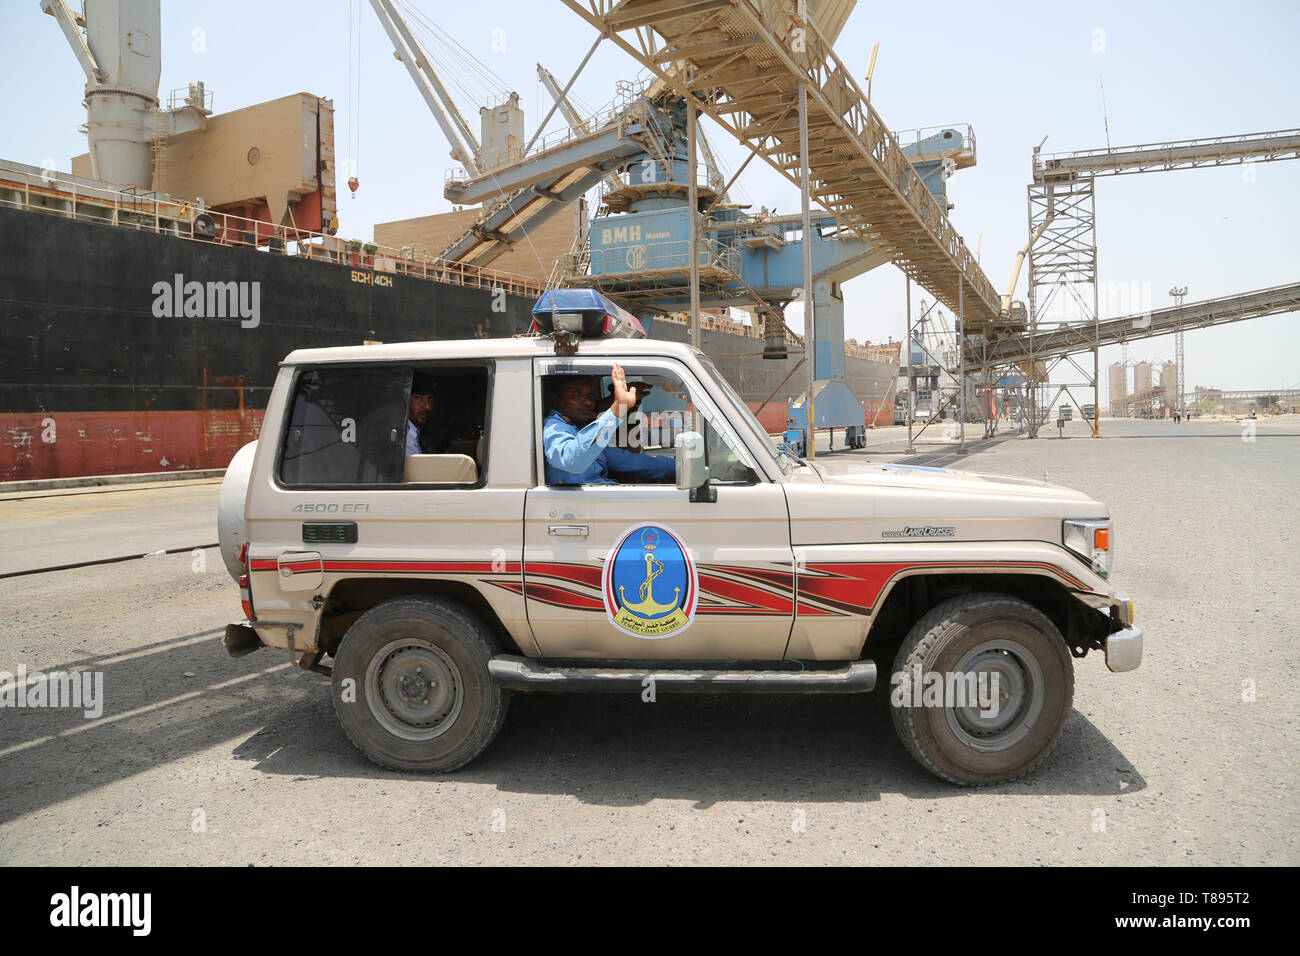 (190511) -- HODEIDAH (YEMEN), May 11, 2019 (Xinhua) -- Members of local coast guard work at Salif port following the withdrawal of Houthi rebels, in Hodeidah, Yemen, on May 11, 2019. Yemen's Houthi rebels began on Saturday withdrawal from two ports of Hodeidah Province, eyewitnesses said. (Xinhua) Stock Photo